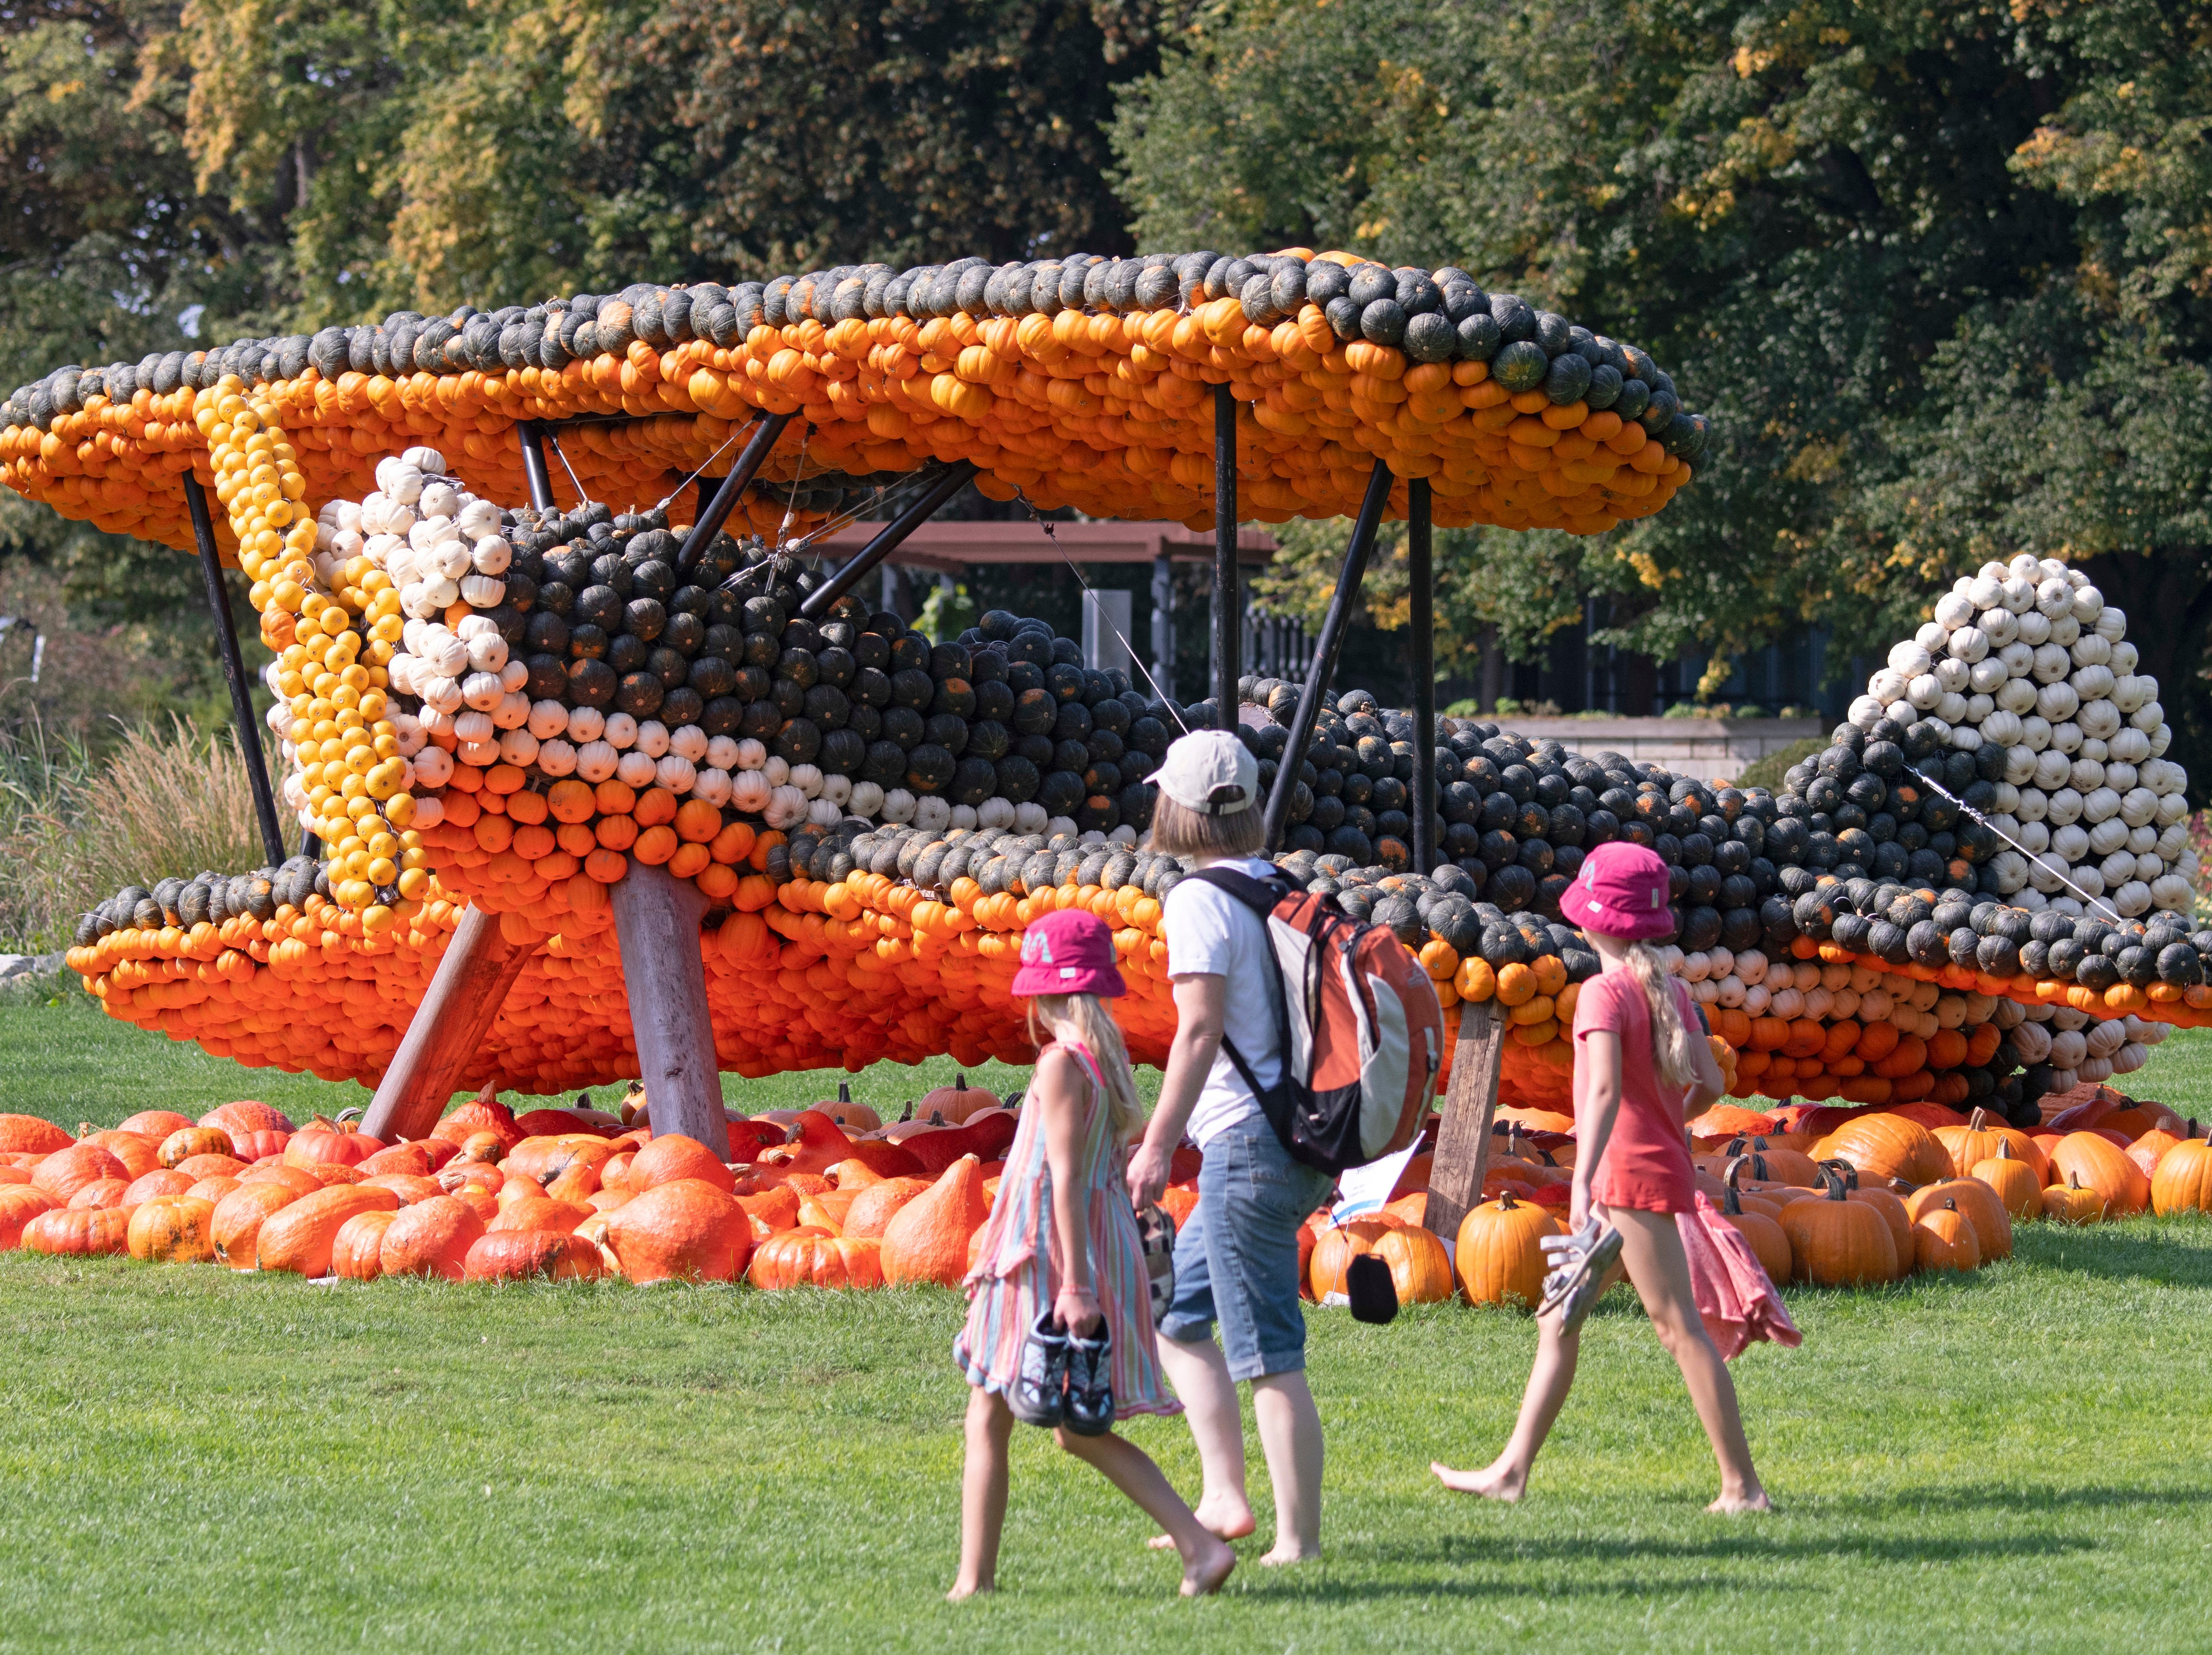 Visitors walk in front of a sculpture displaying an airplane during the autumn exhibition a horticultural exhibition in Erfurt, Germany on Sept. 5, 2018. Gardeners created different sculptures with thousands of pumpkins.